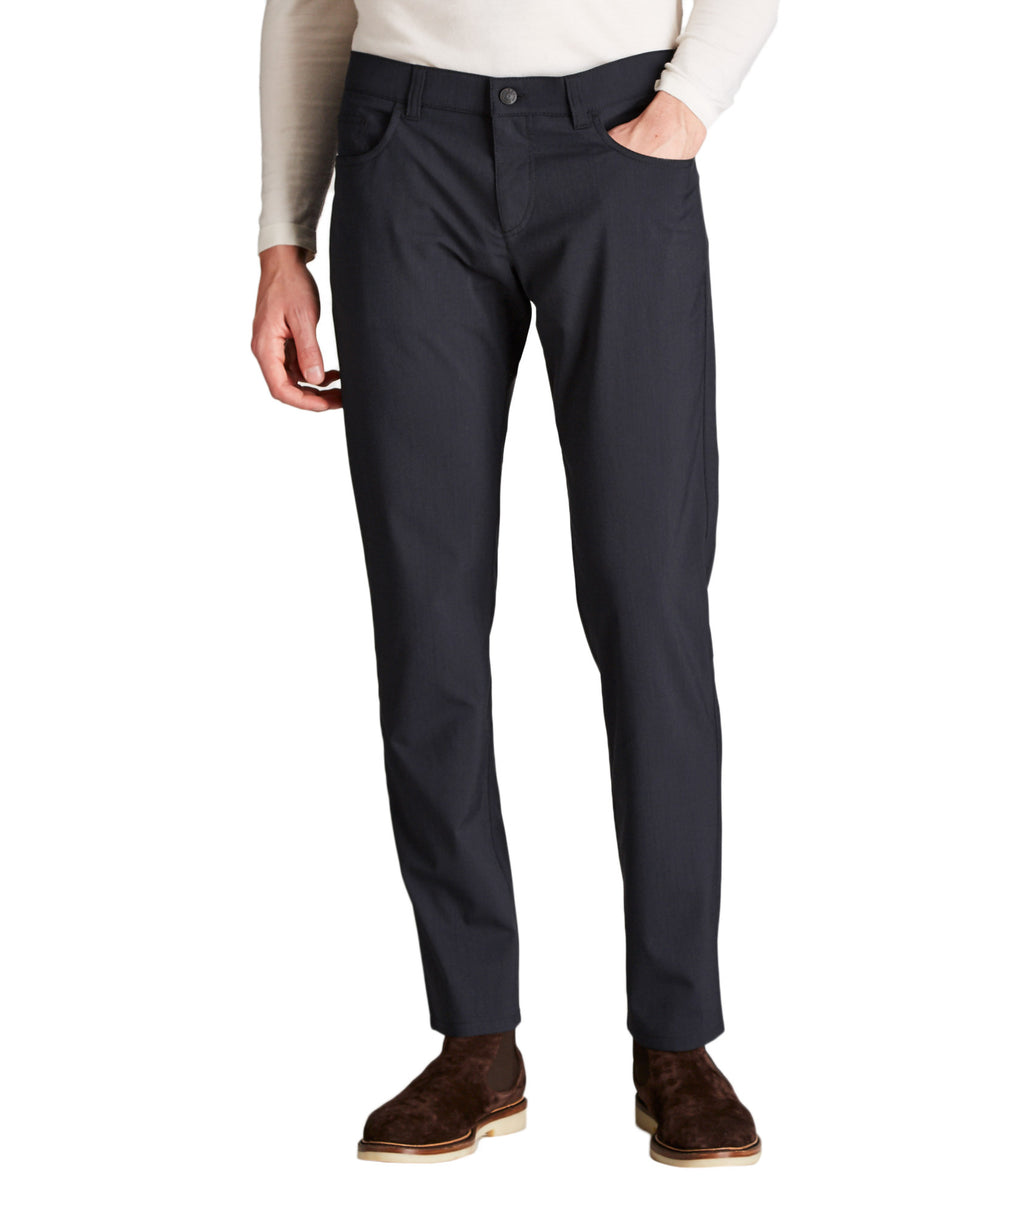 Alberto - Ceramica Pipe Slim Fit Solid Navy